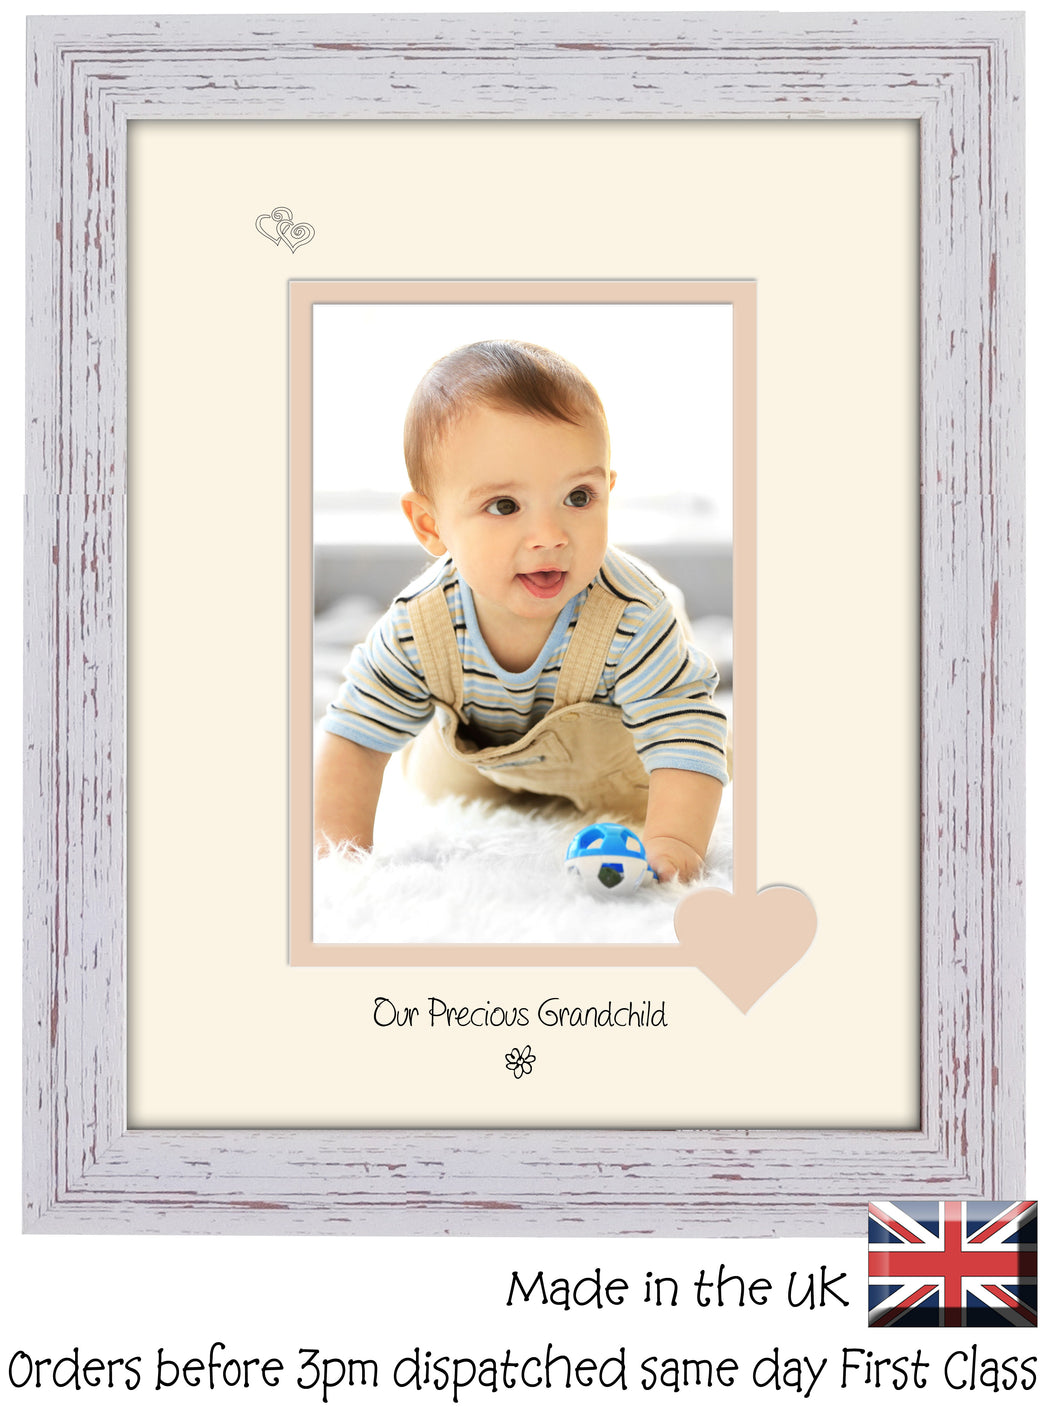 Grandchild Photo Frame - Our precious Grandchild Portrait photo frame 6